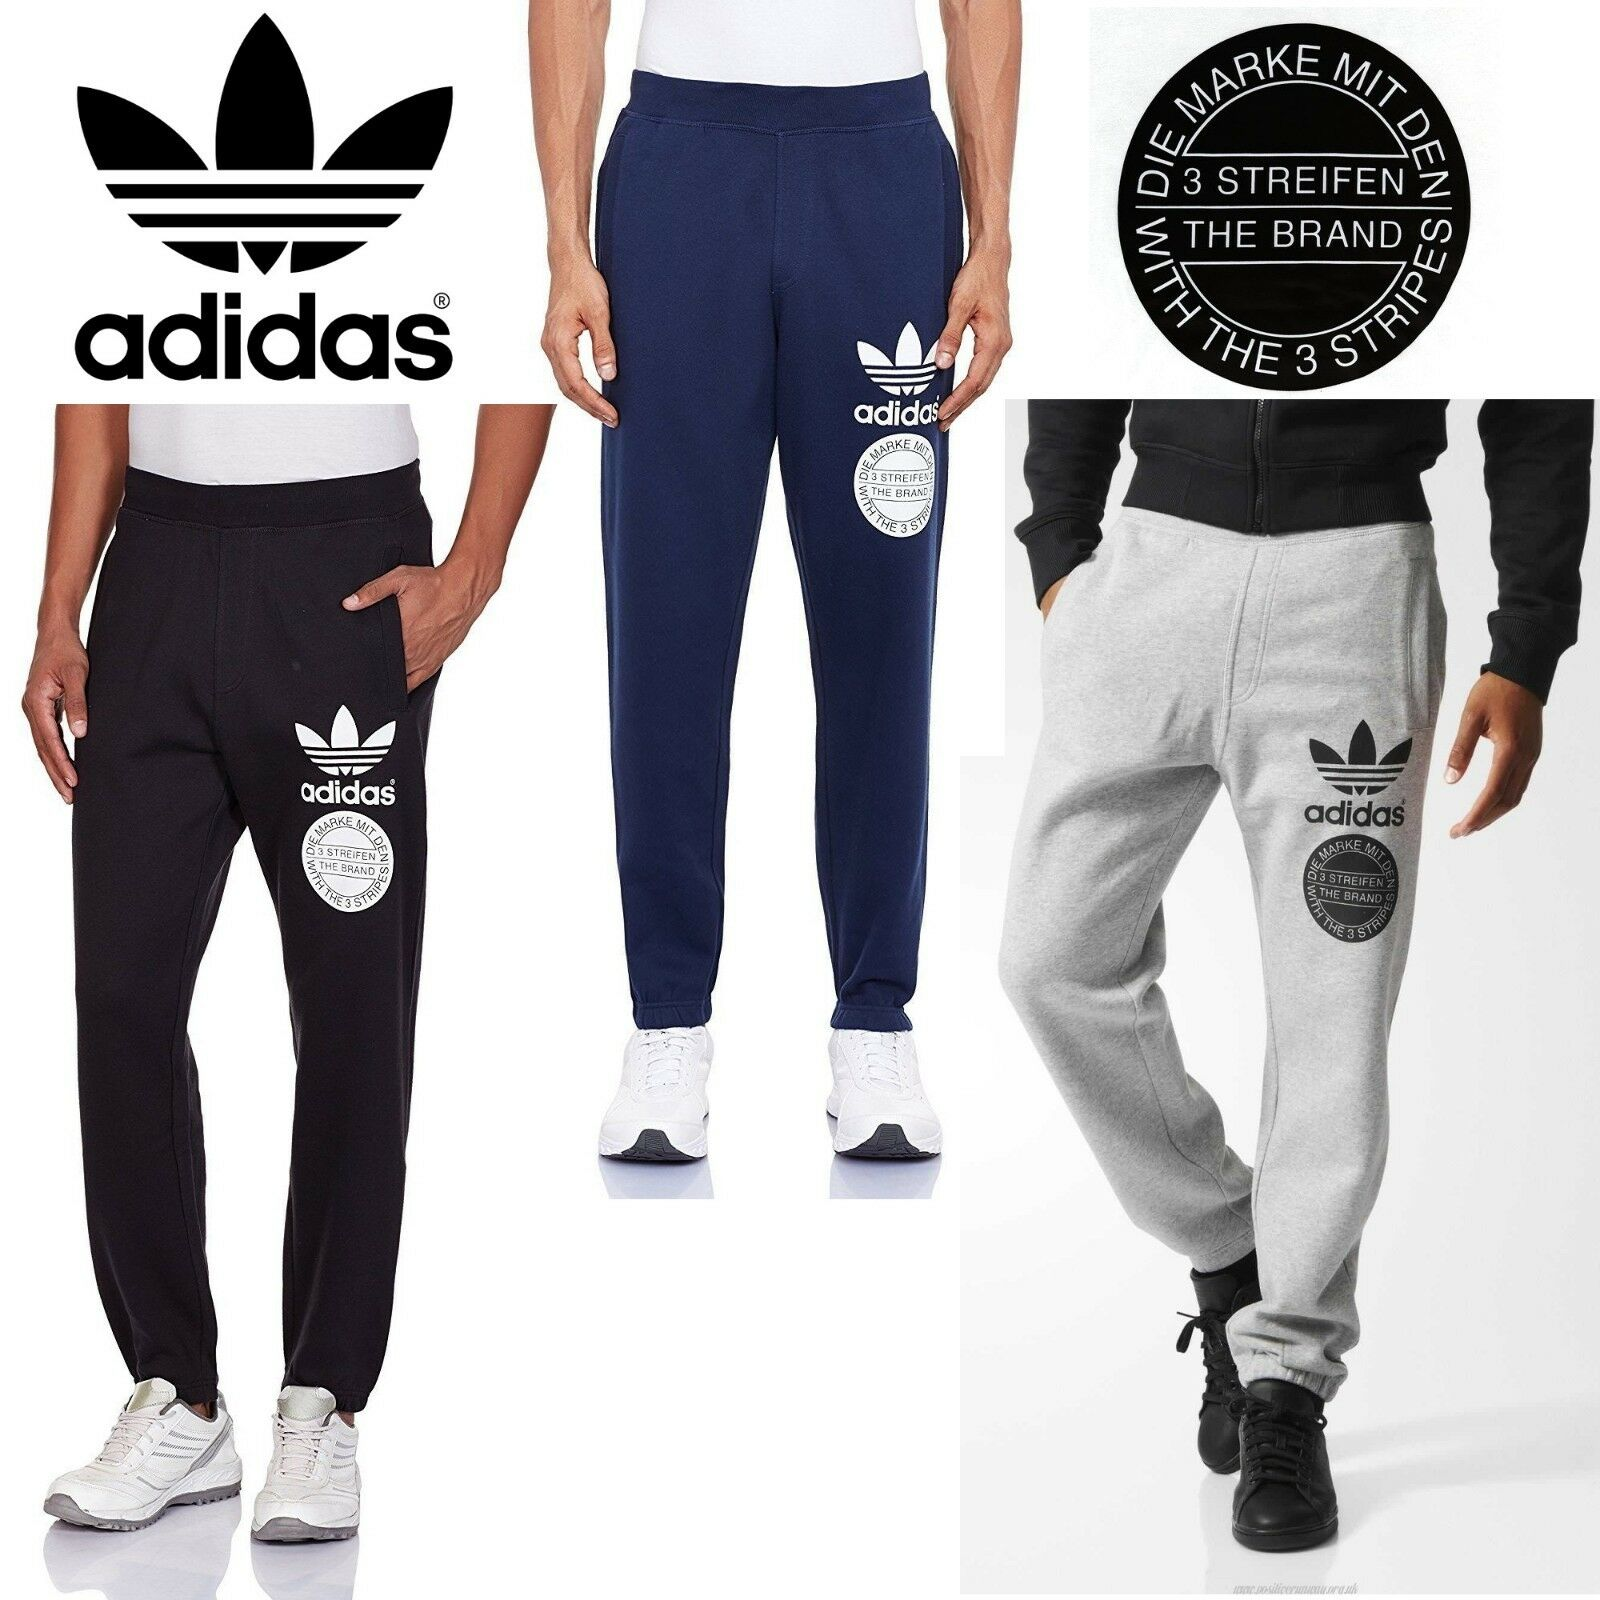 Details about Adidas Originals Men's Trefoil Graphic Street Tracksuit Pants Sports Trousers